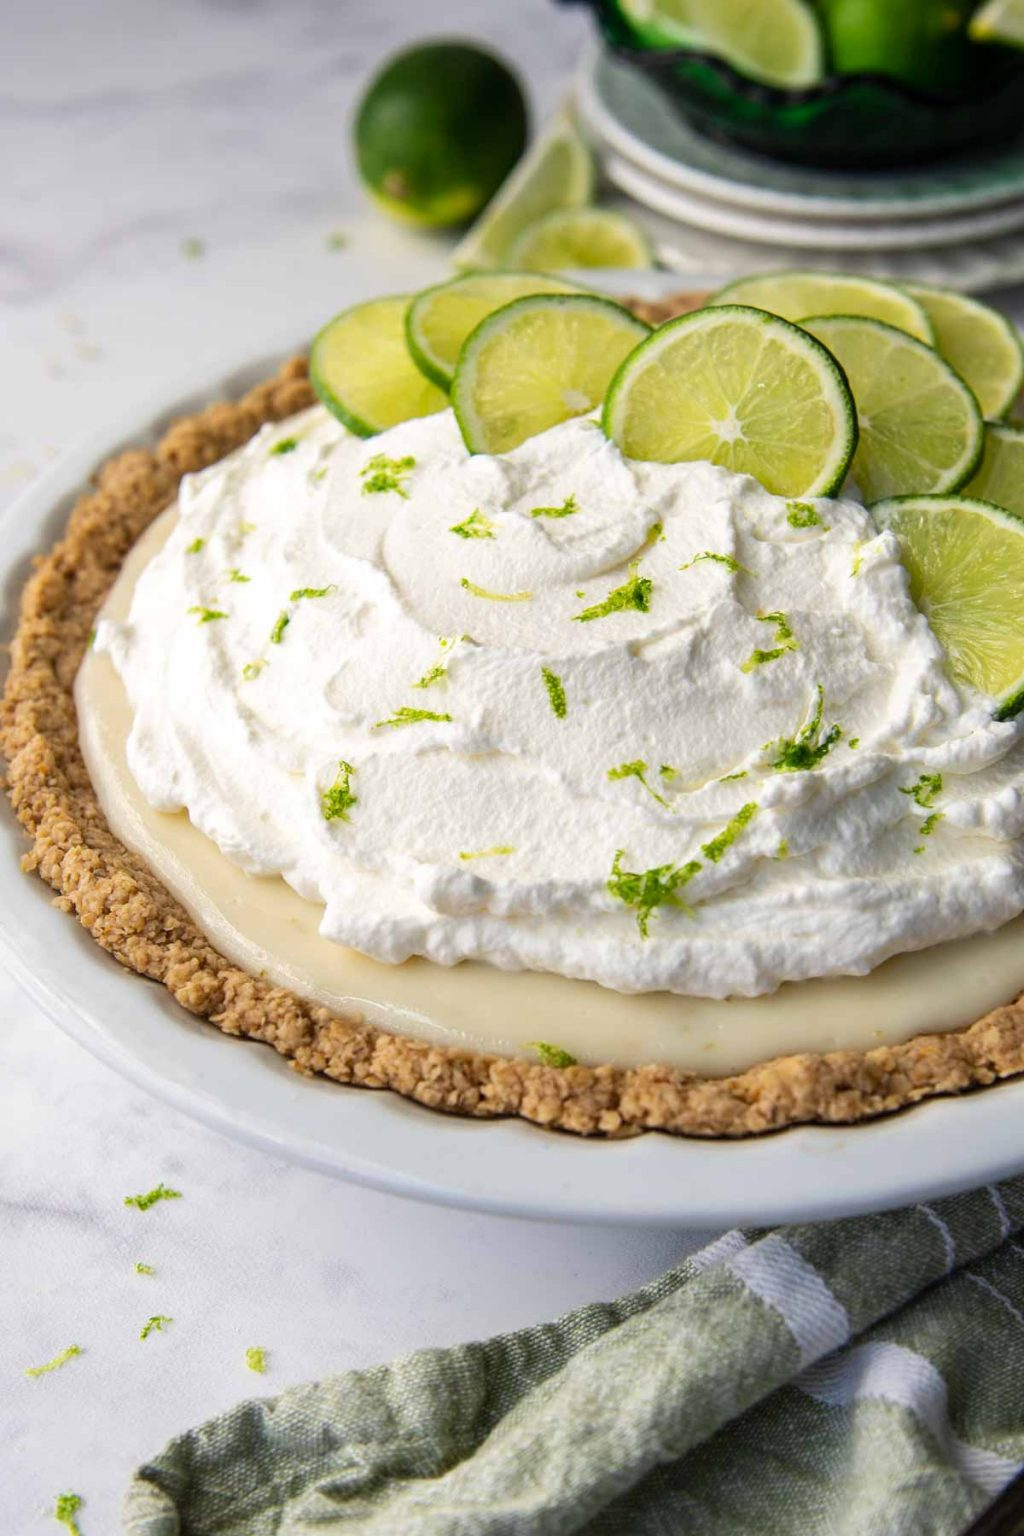 key lime pie with oat flour crust and green linen next to it